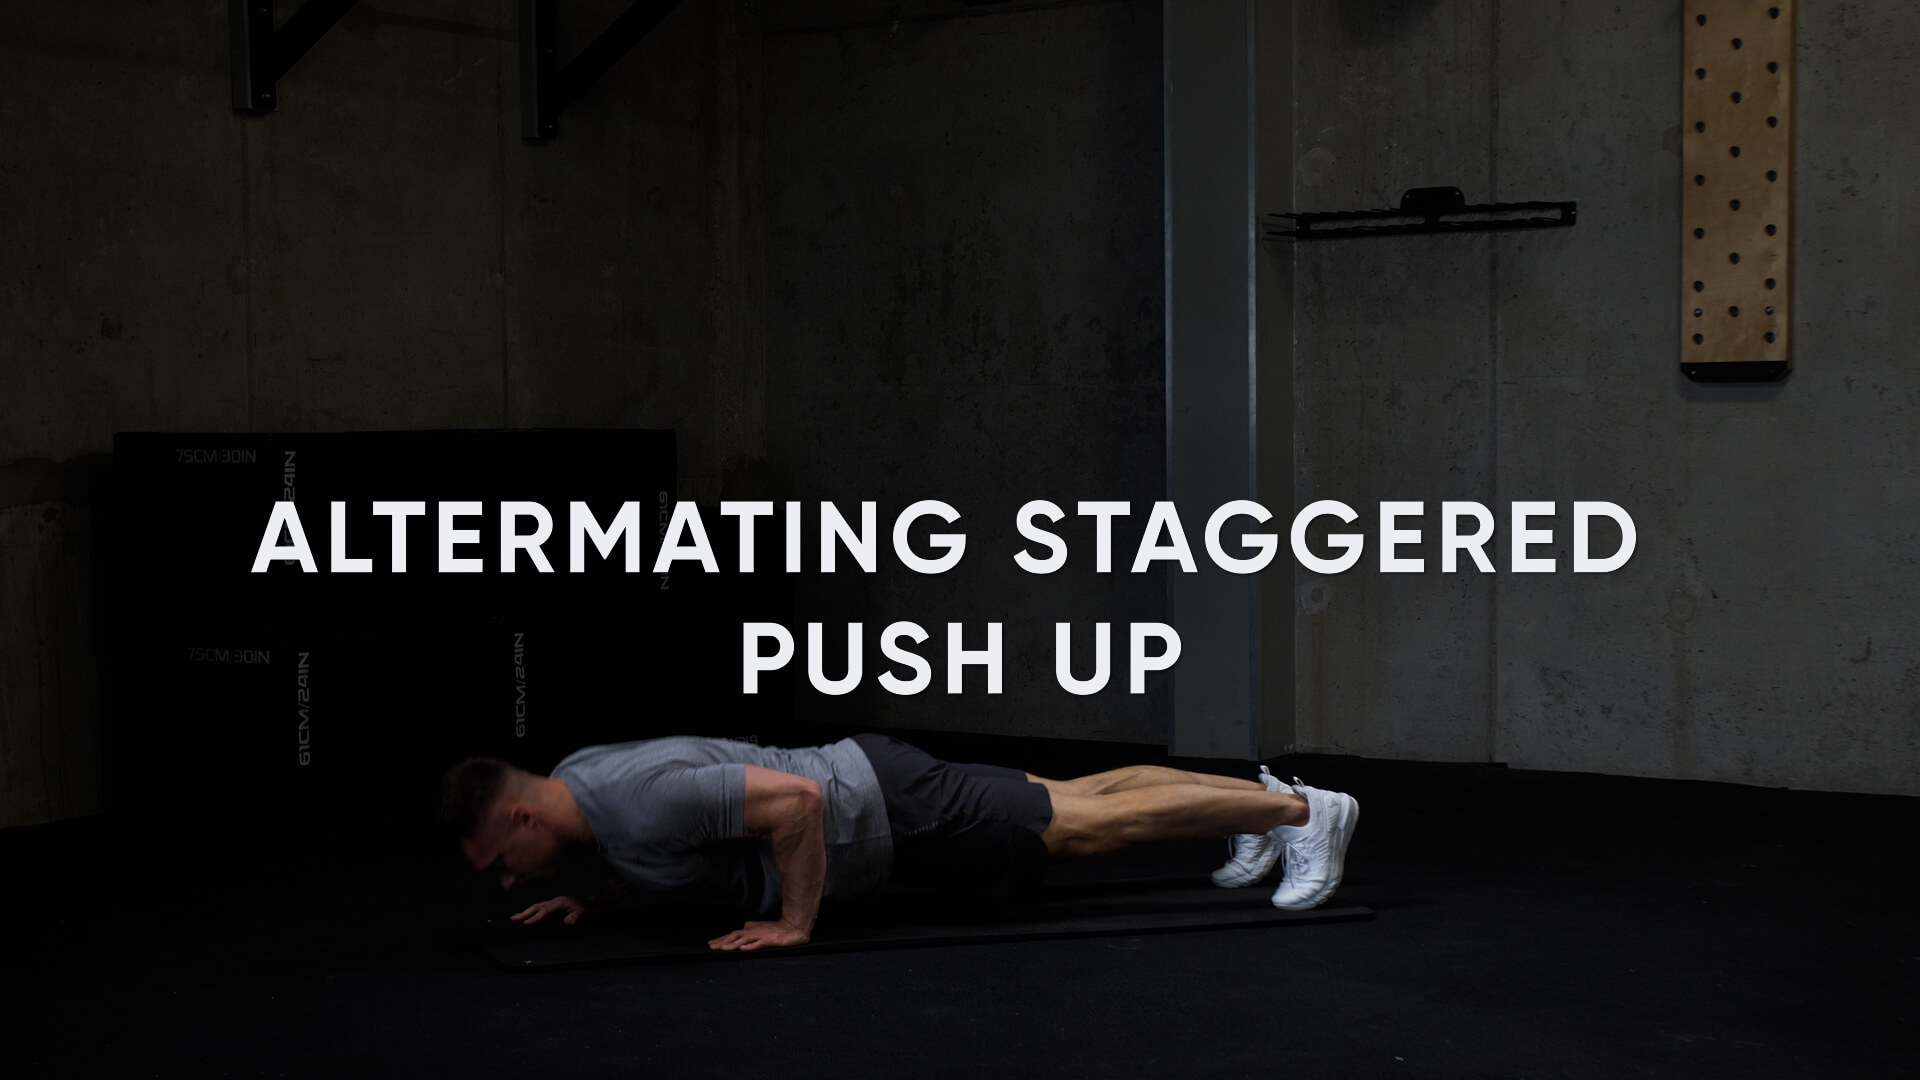 Alternating Staggered Push-Up